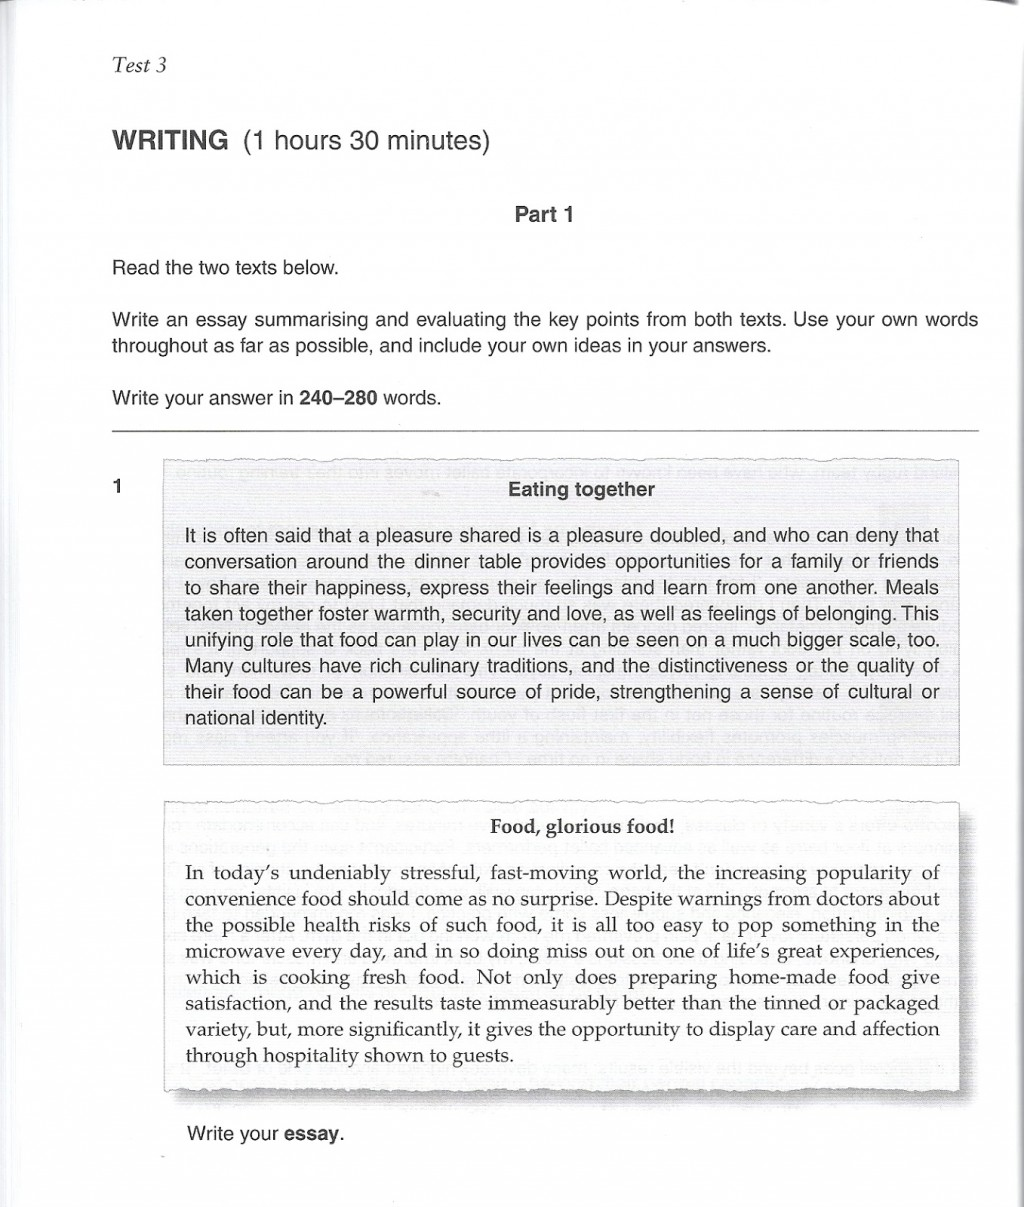 008 Essay Of Basketball Example Writingtask Cpe Fearsome Short My Favorite Sport Large